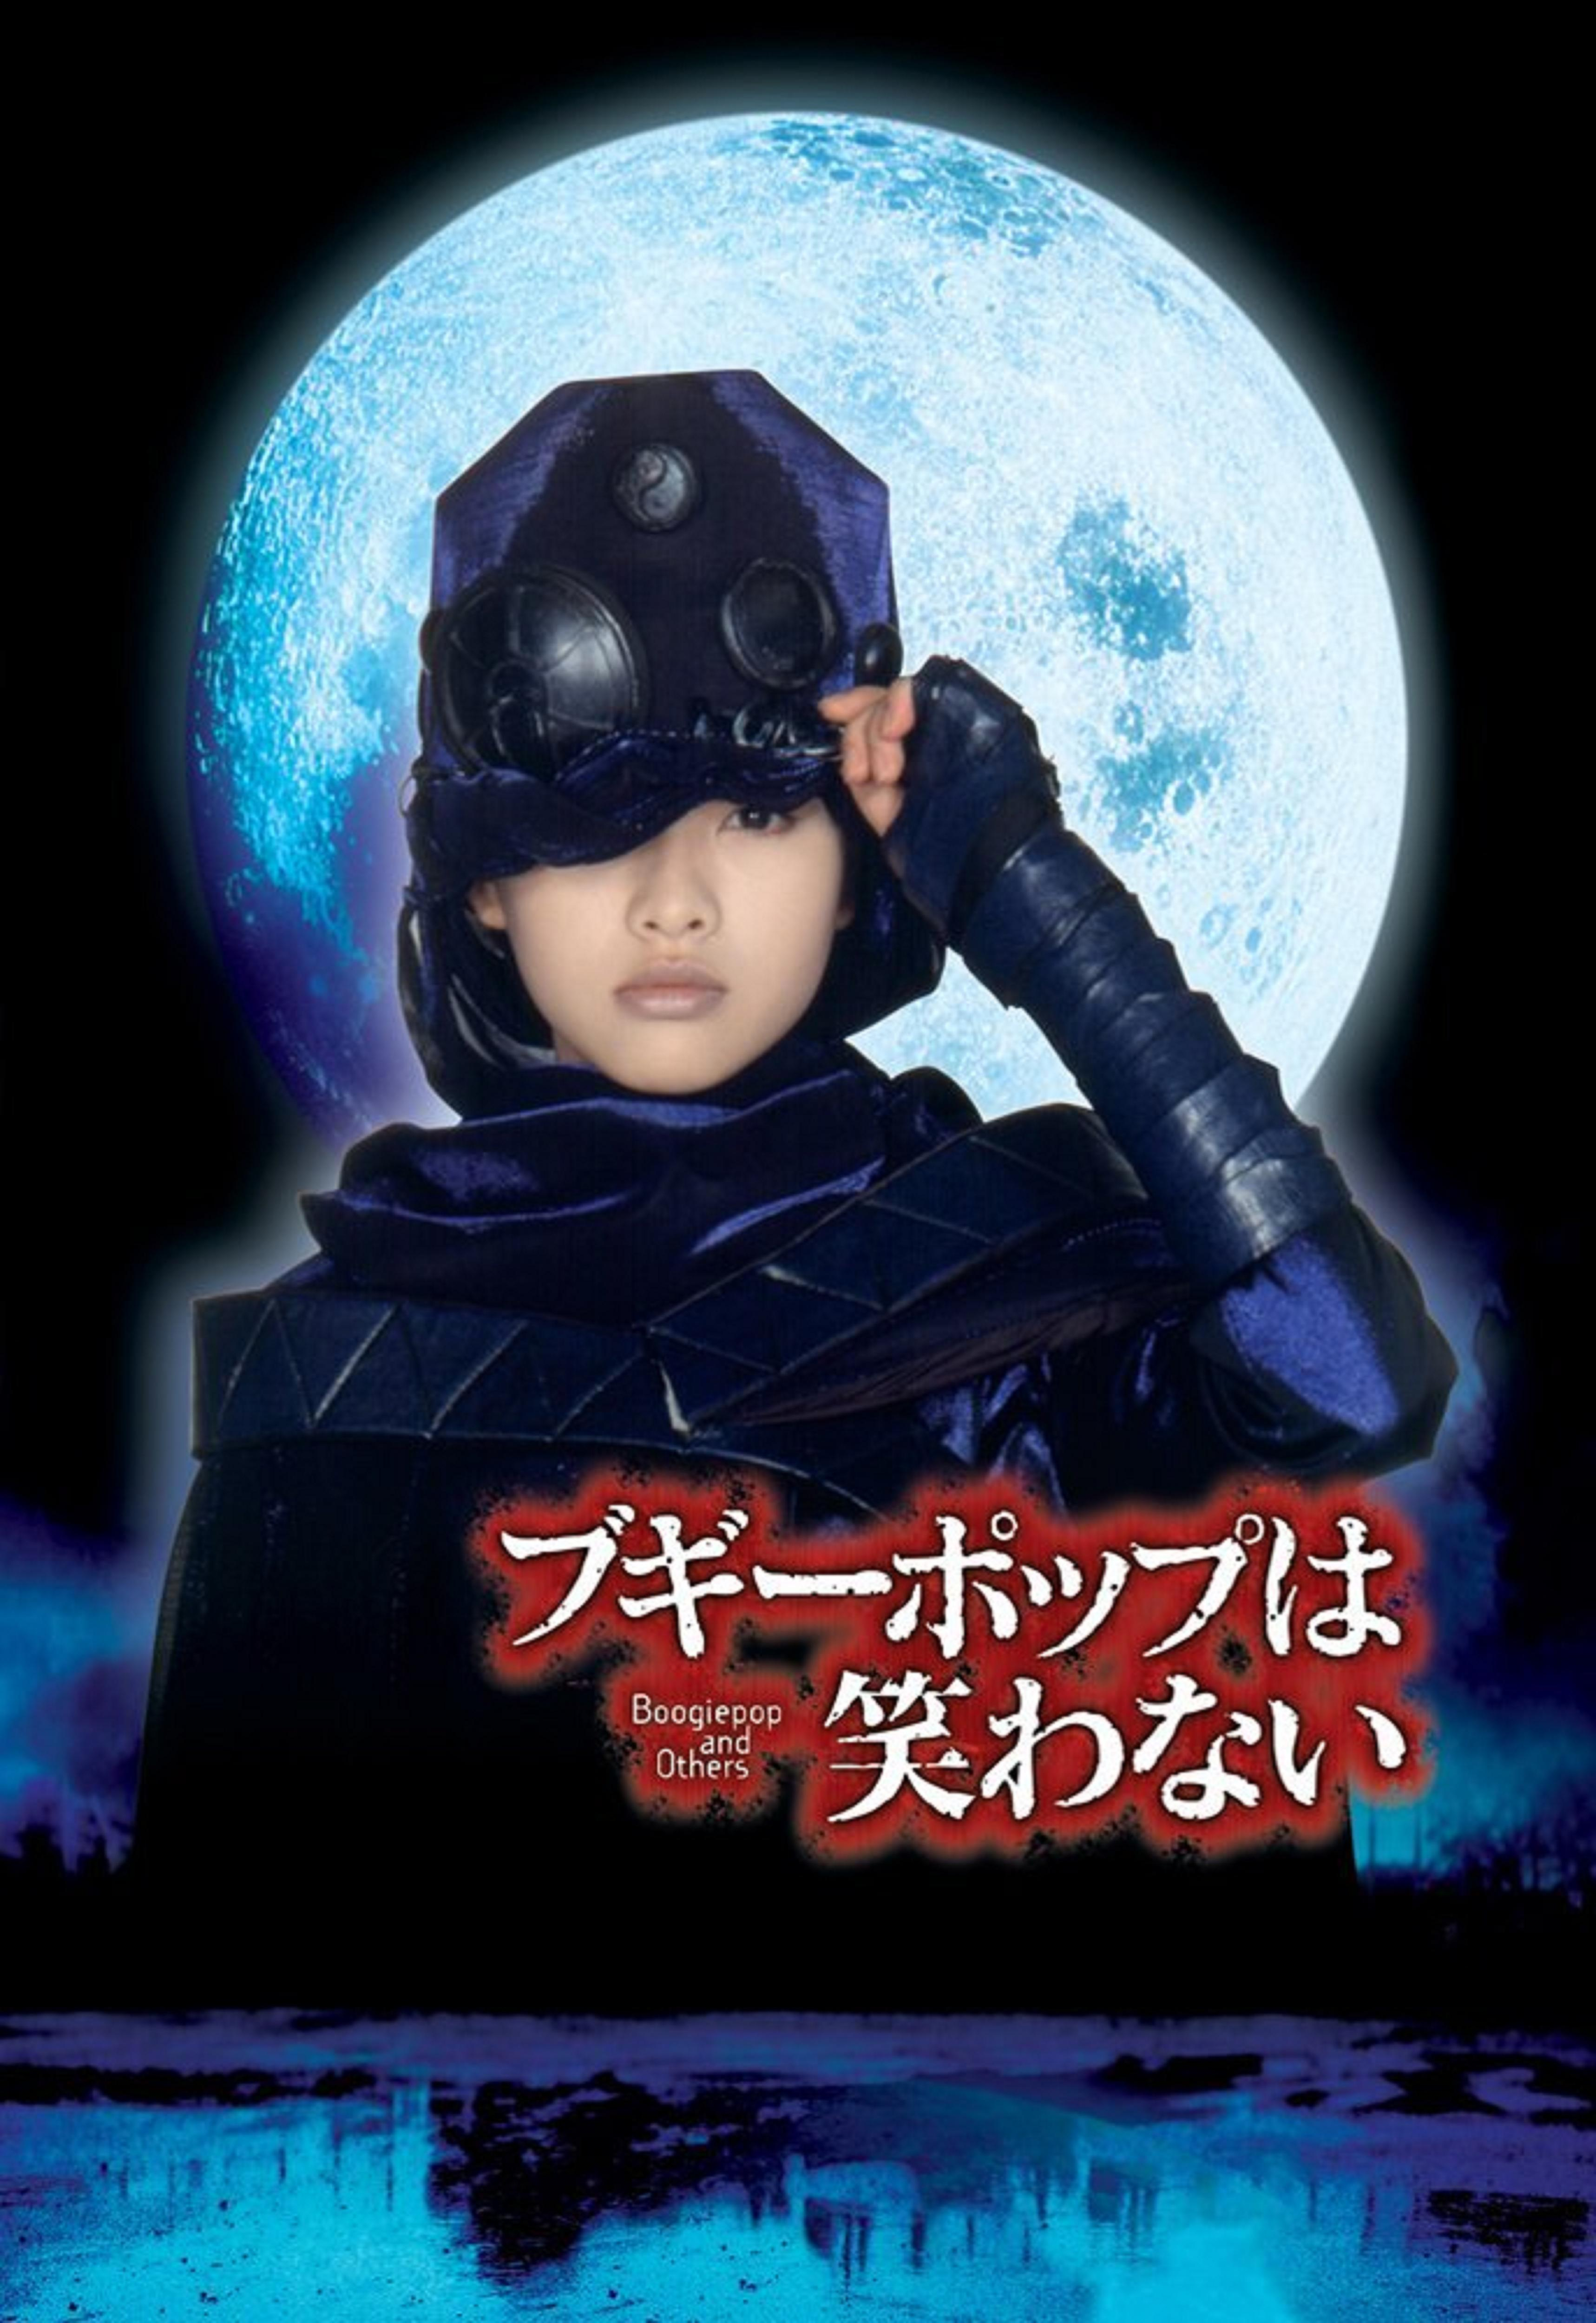 Boogiepop And Others 2000 Imdb